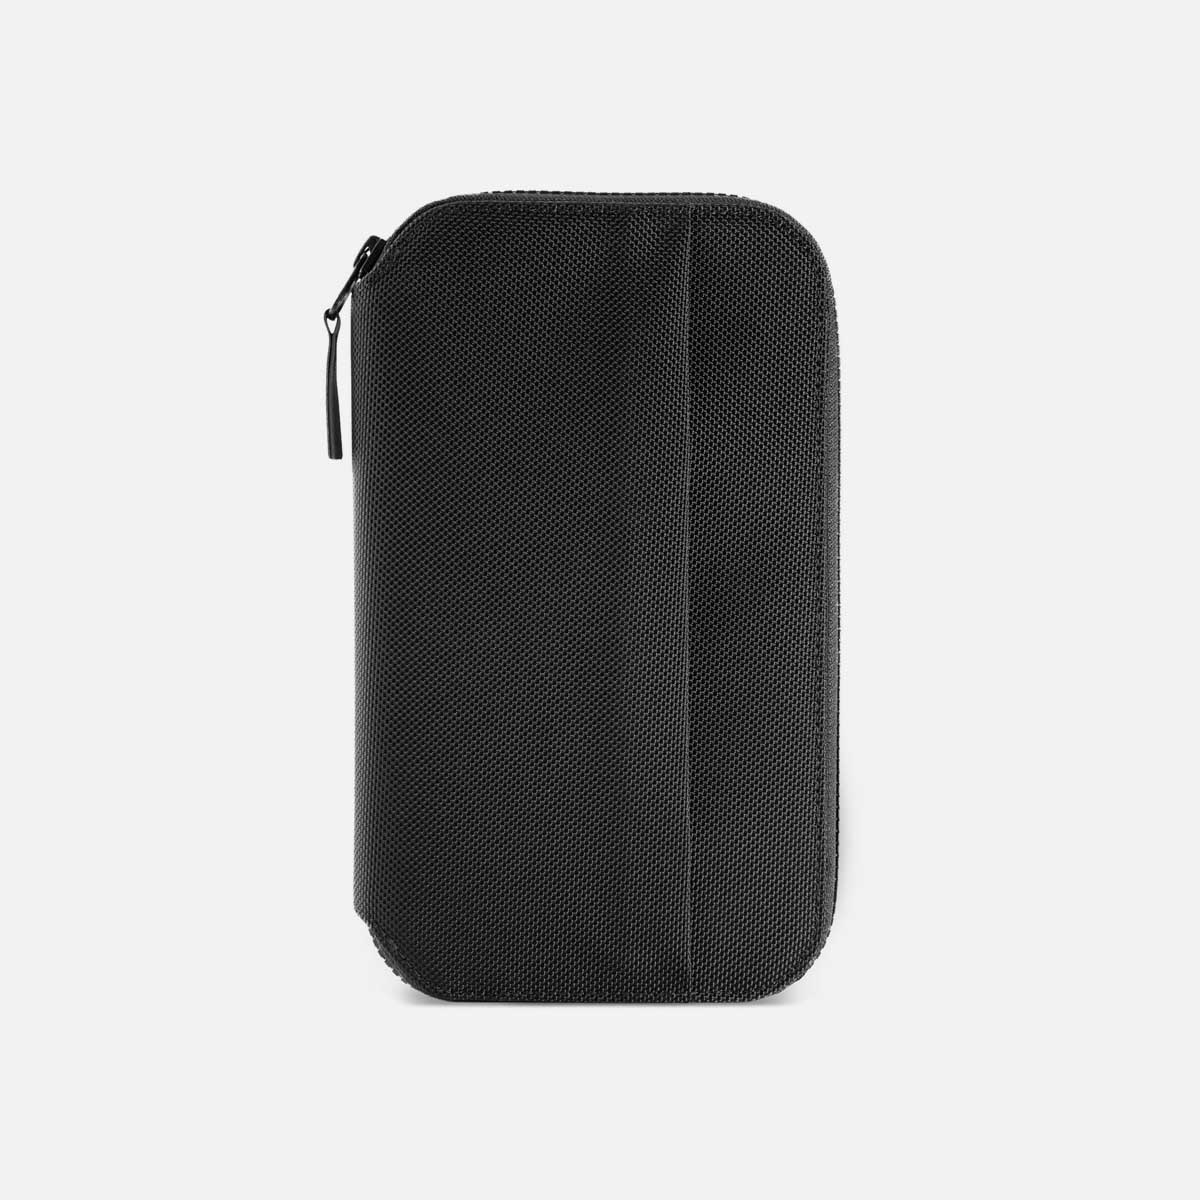 41002_travelzip_black_front.JPG